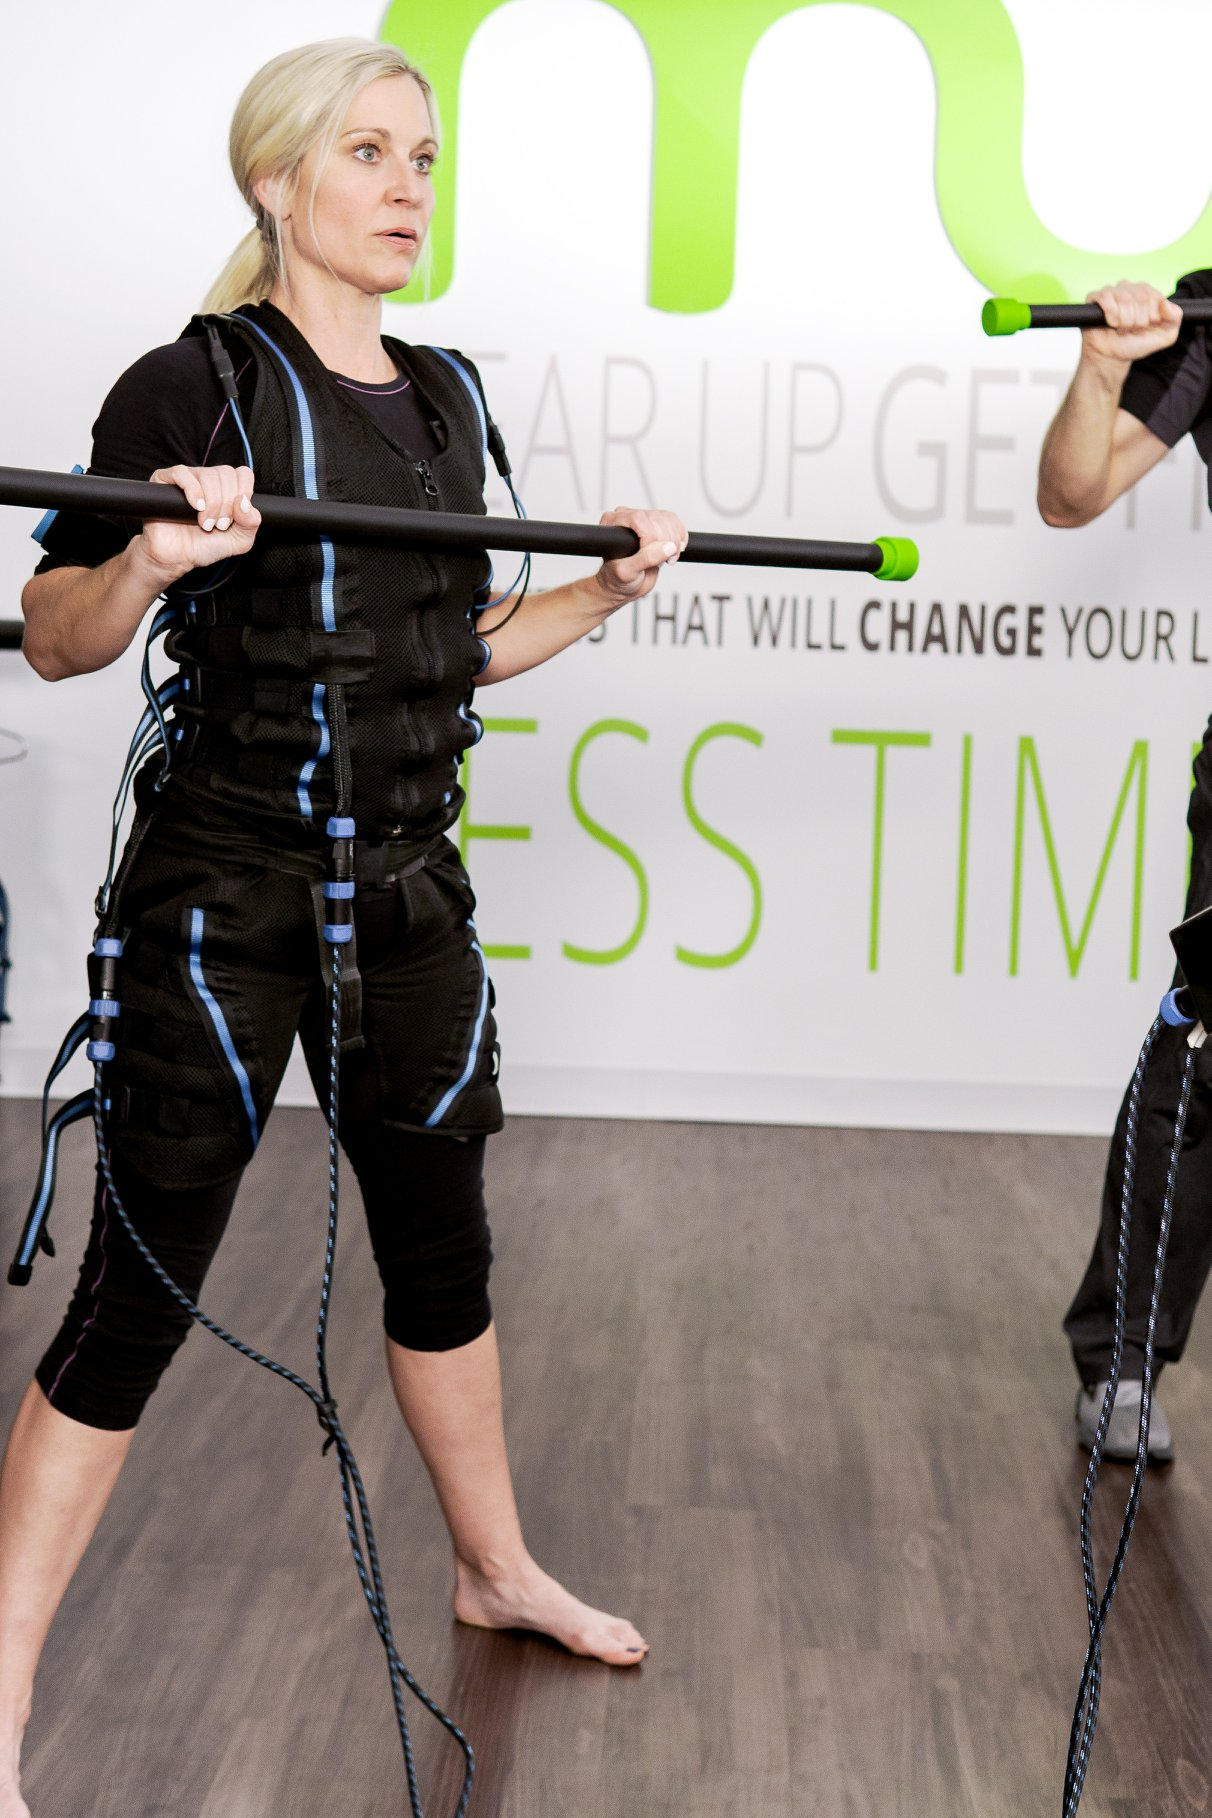 Electrical Muscle Stimulation Workout Celebrities Love!